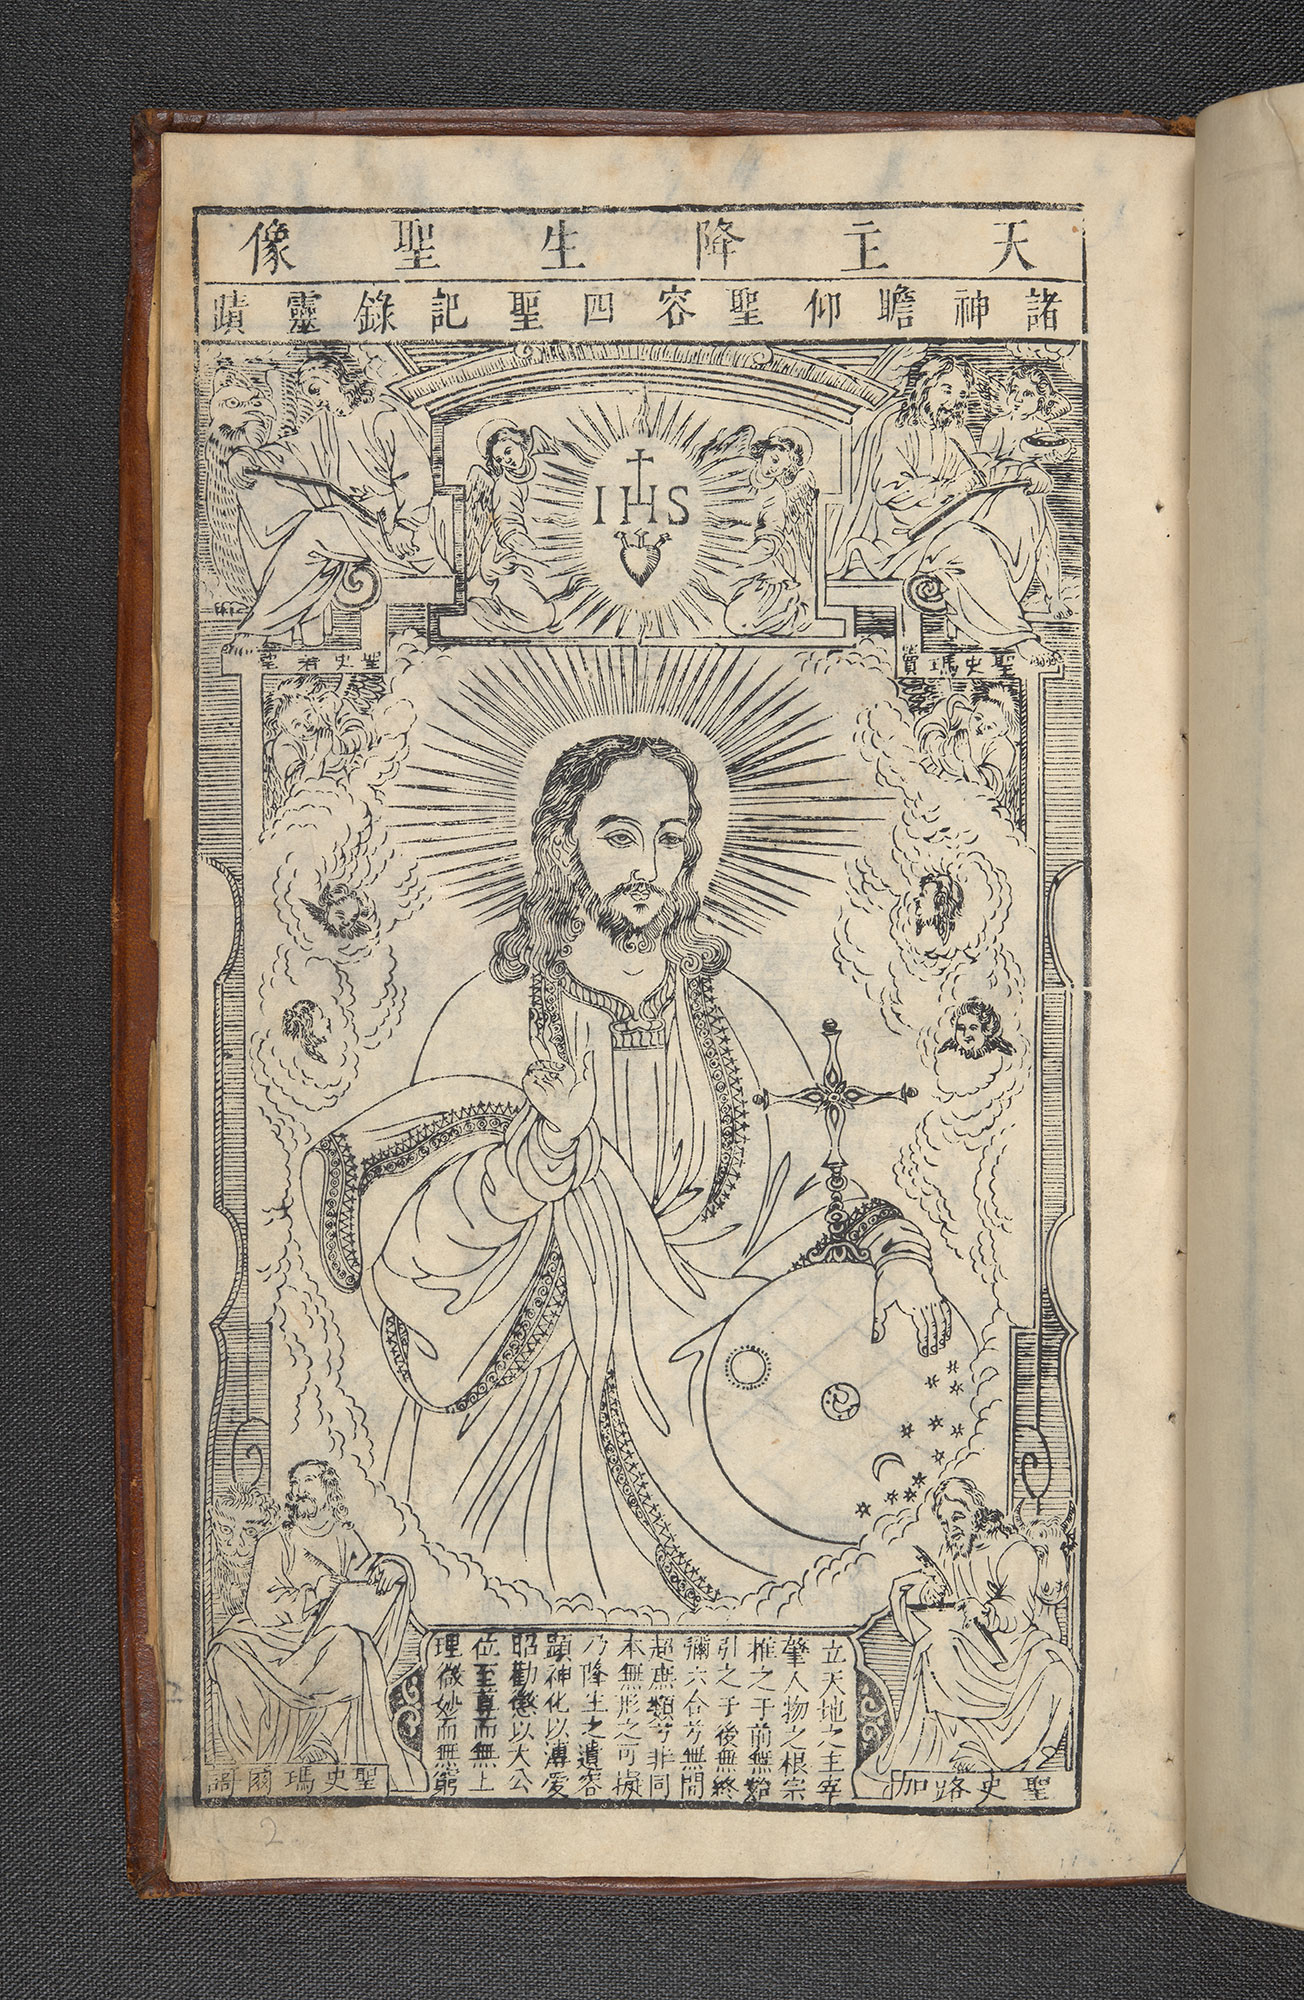 A woodblock-printed Illustrated Life of Jesus in Chinese, 1637. Copyright: British Library Board